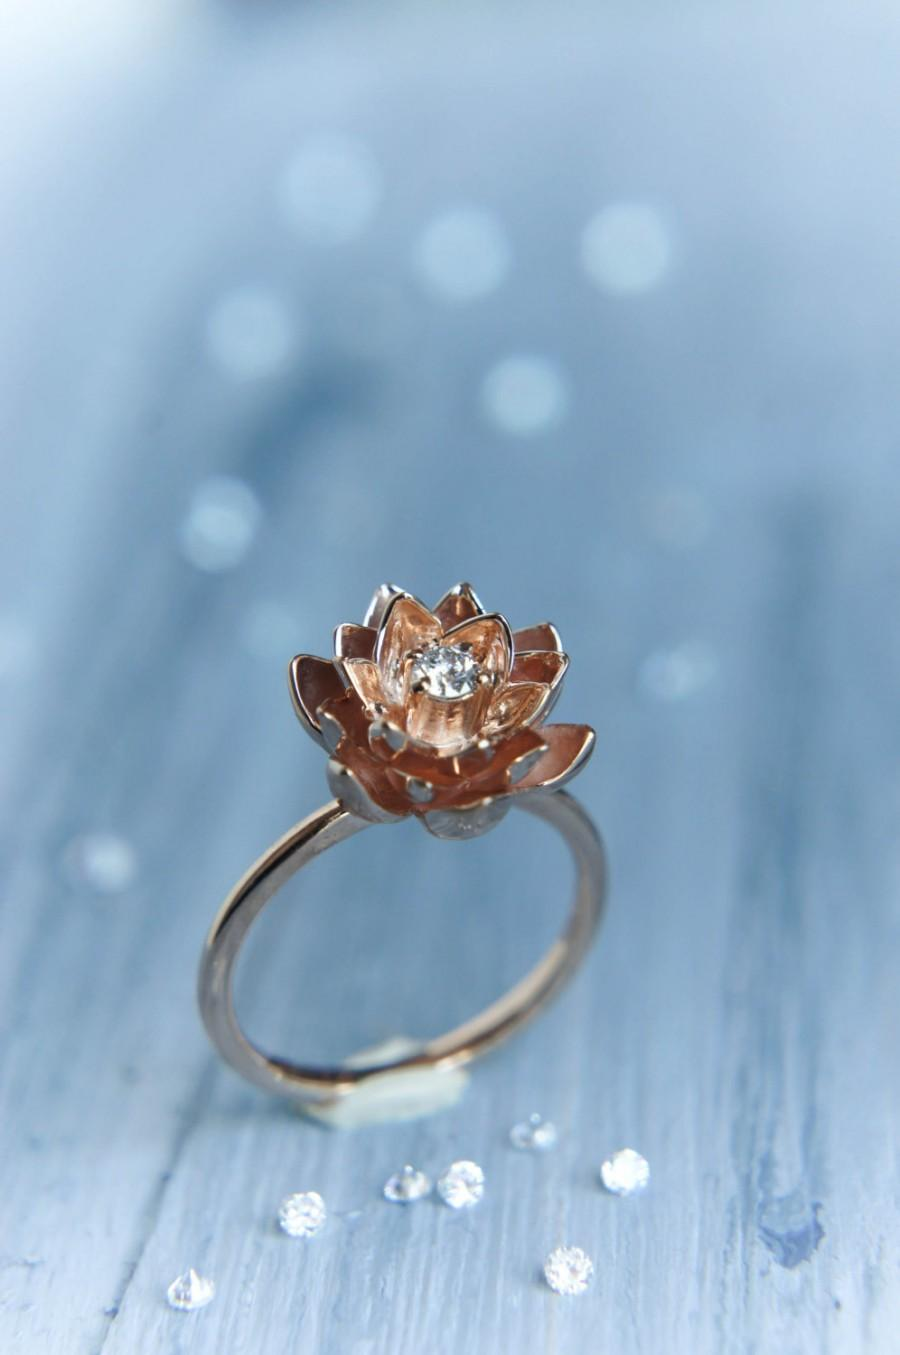 for customer article experience picture to how small shopping a my lotus buy an crimson topics rings diamond engagement flower ring unique rose of online